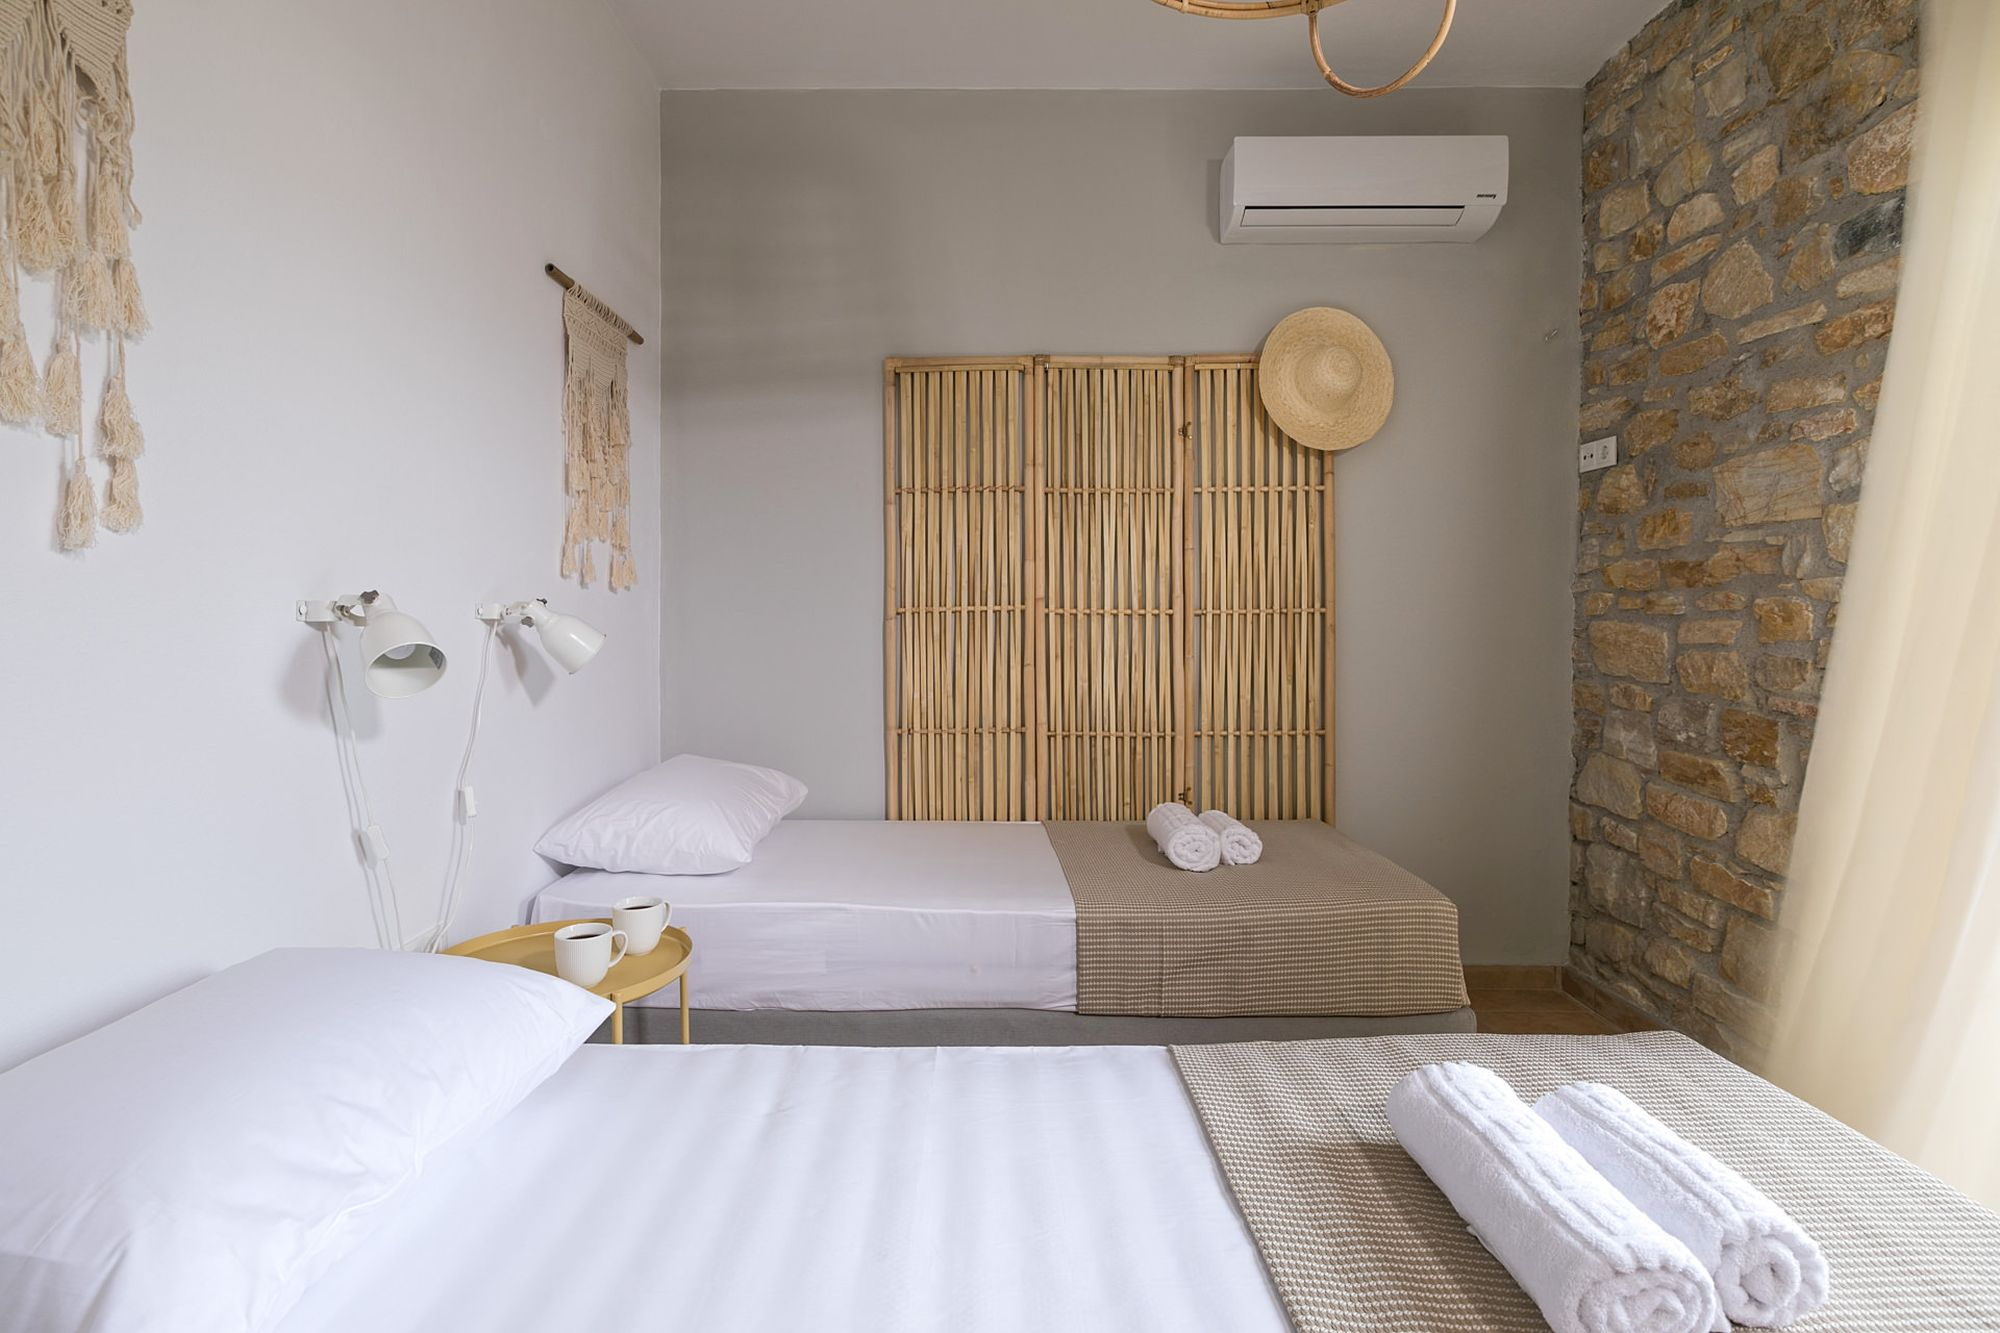 A twin bedroom of a stone-built residence decorated in boho style and in earth tones.